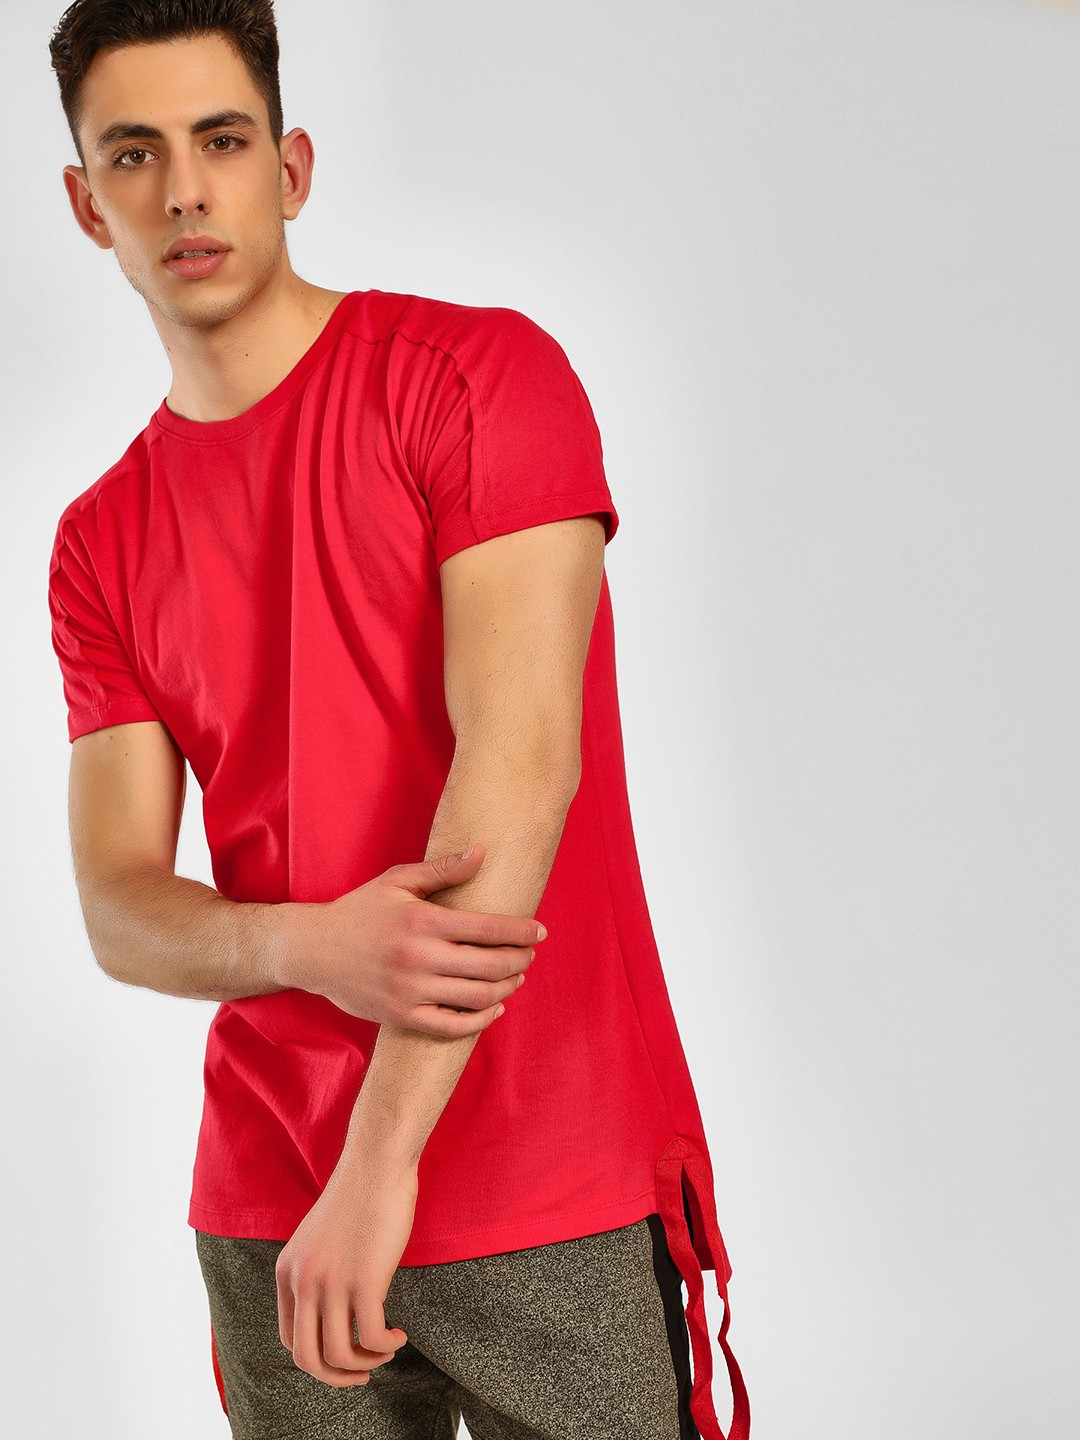 SKULT By Shahid Kapoor Red Tape Detail T-Shirt 1